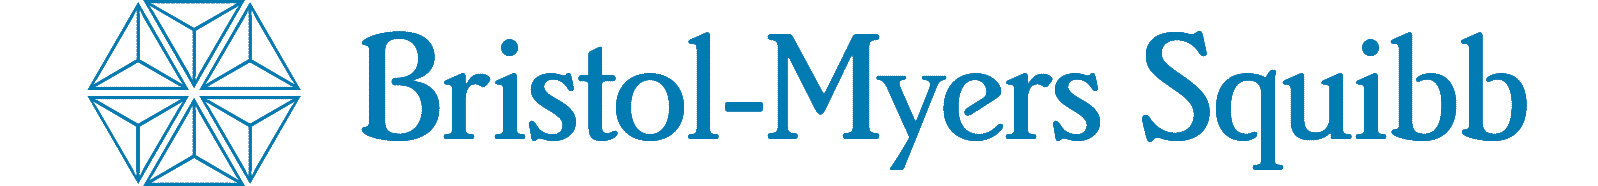 4bristol-myers-squibb.png